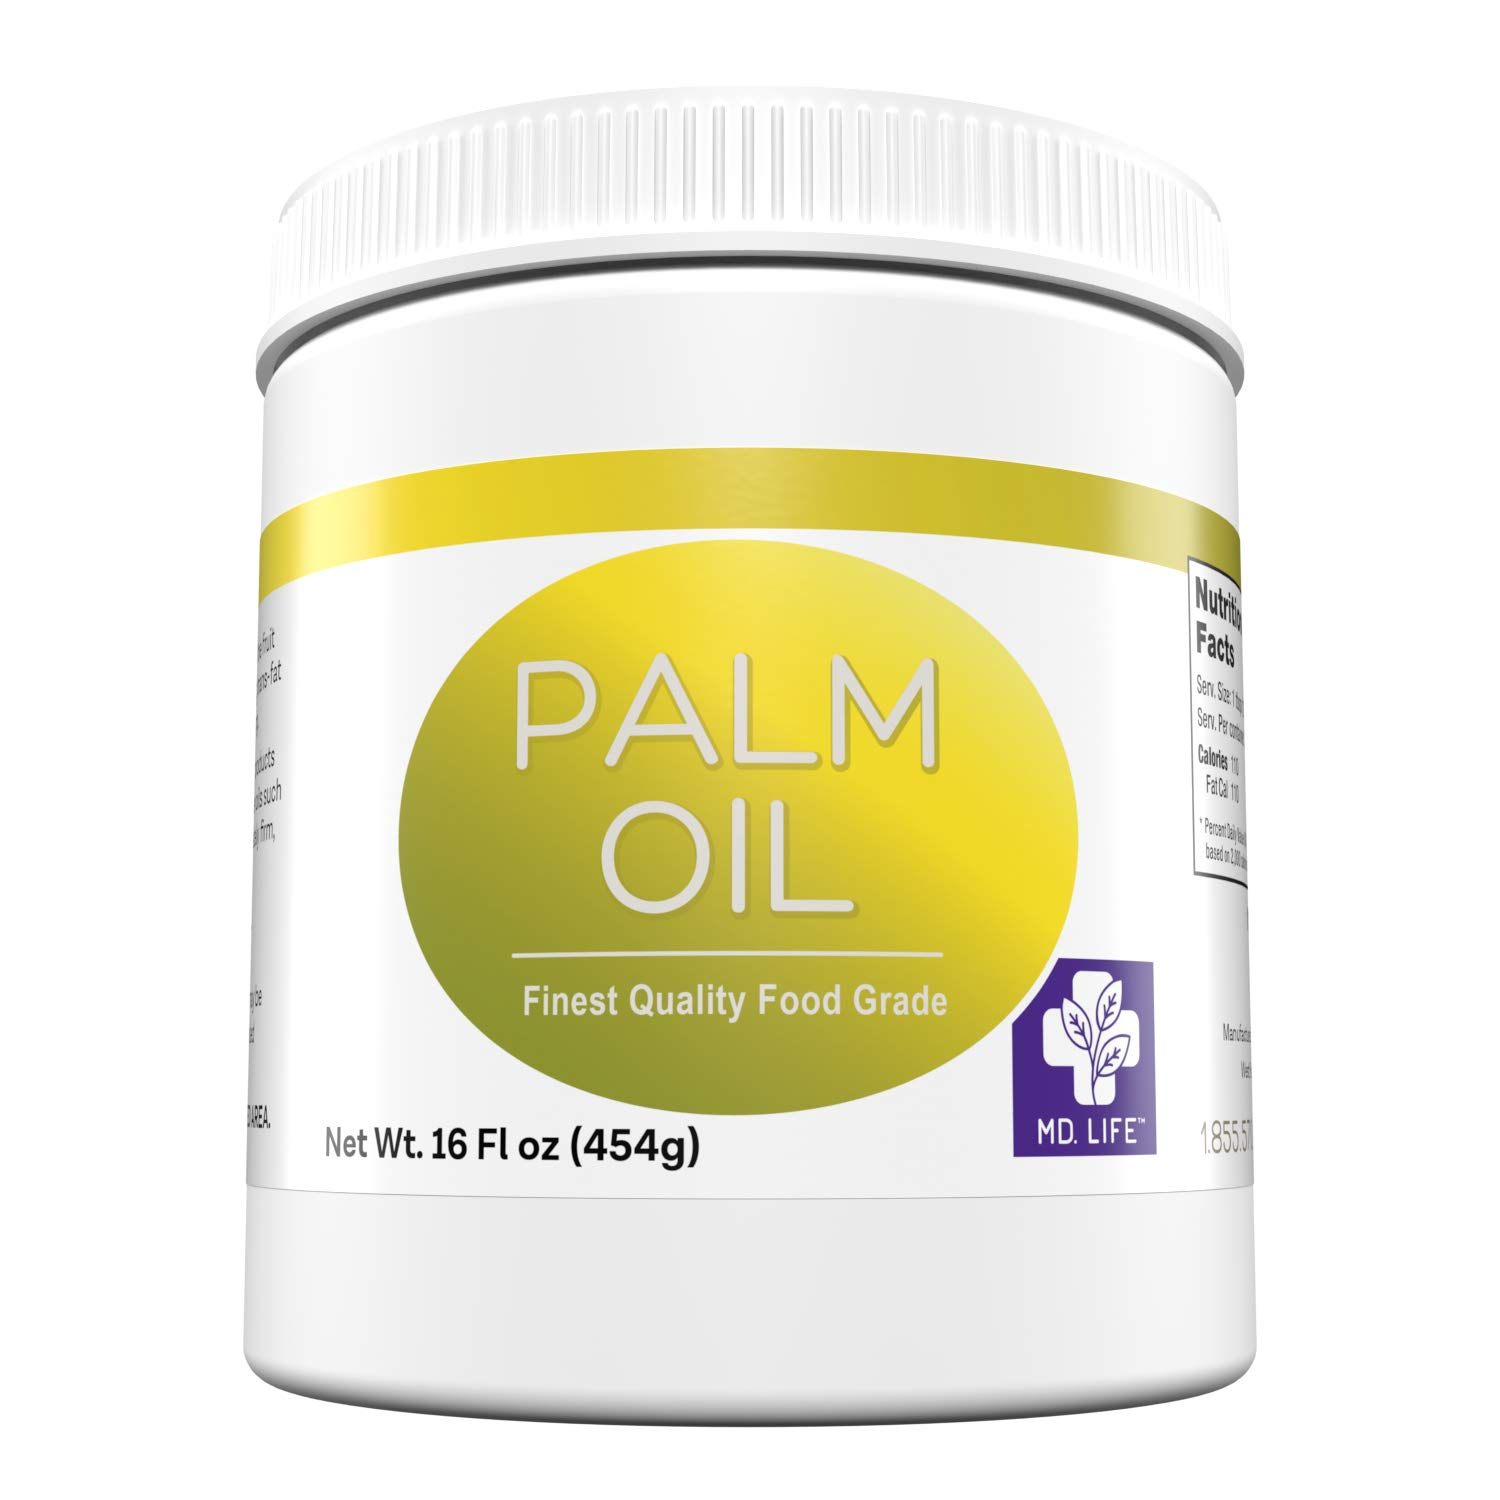 MD.LIFE PALM OIL - 16oz - Sustainable Food Grade Palm Oil for Cooking - Great for Soap Making Supplies, Cooking Oil, Creams and Lotions